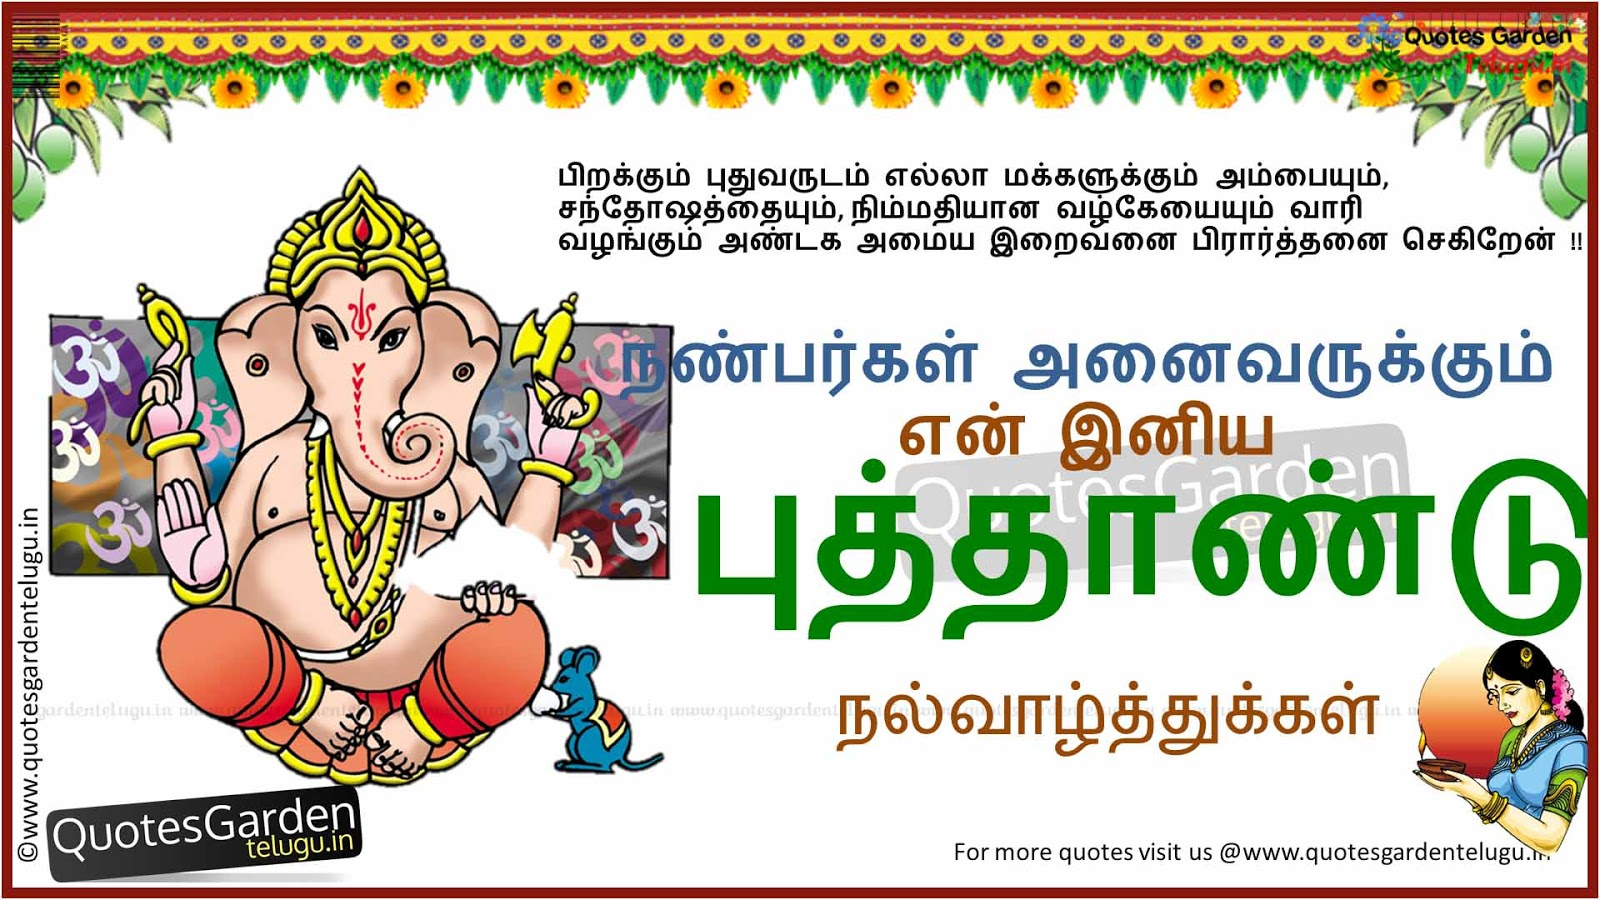 Best Tamil New Year Greetings Quotes Wallpapers Quotes Garden